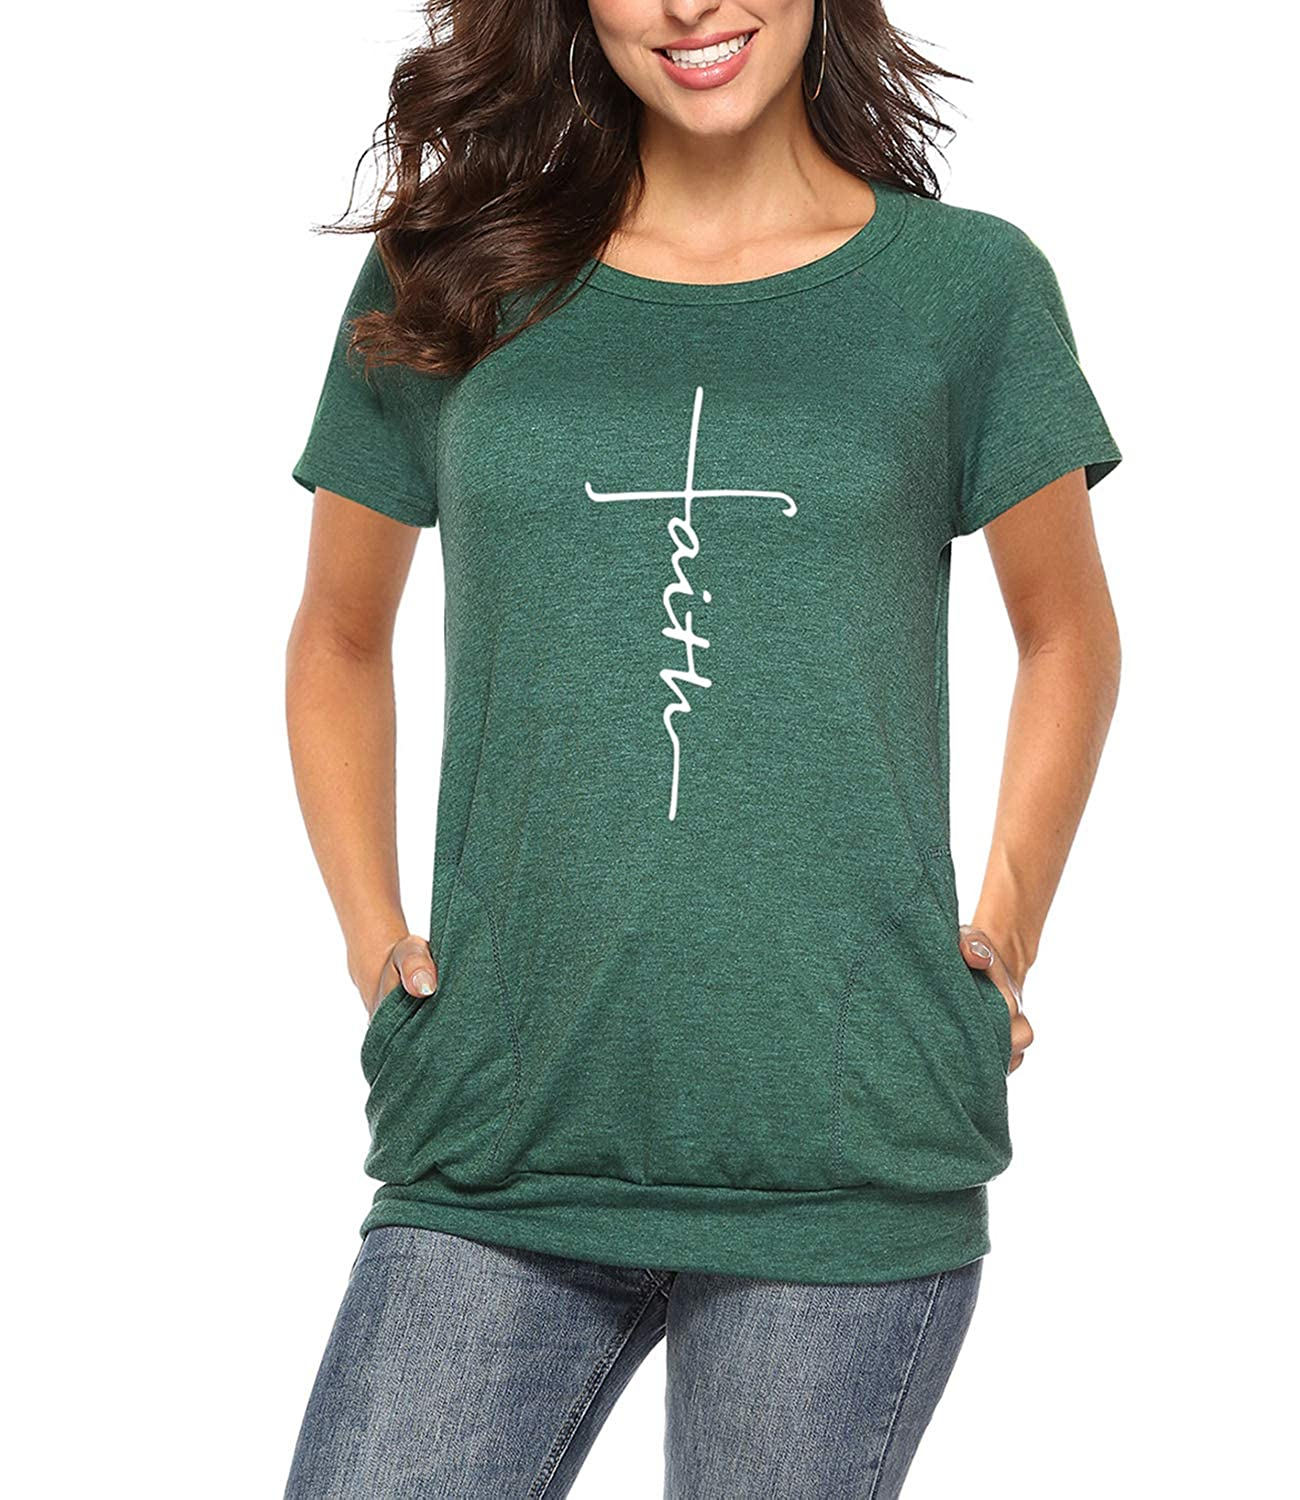 Mansy Womens Casual Faith Tshirts Letter Printed Graphic Tees Tops Summer Pockets